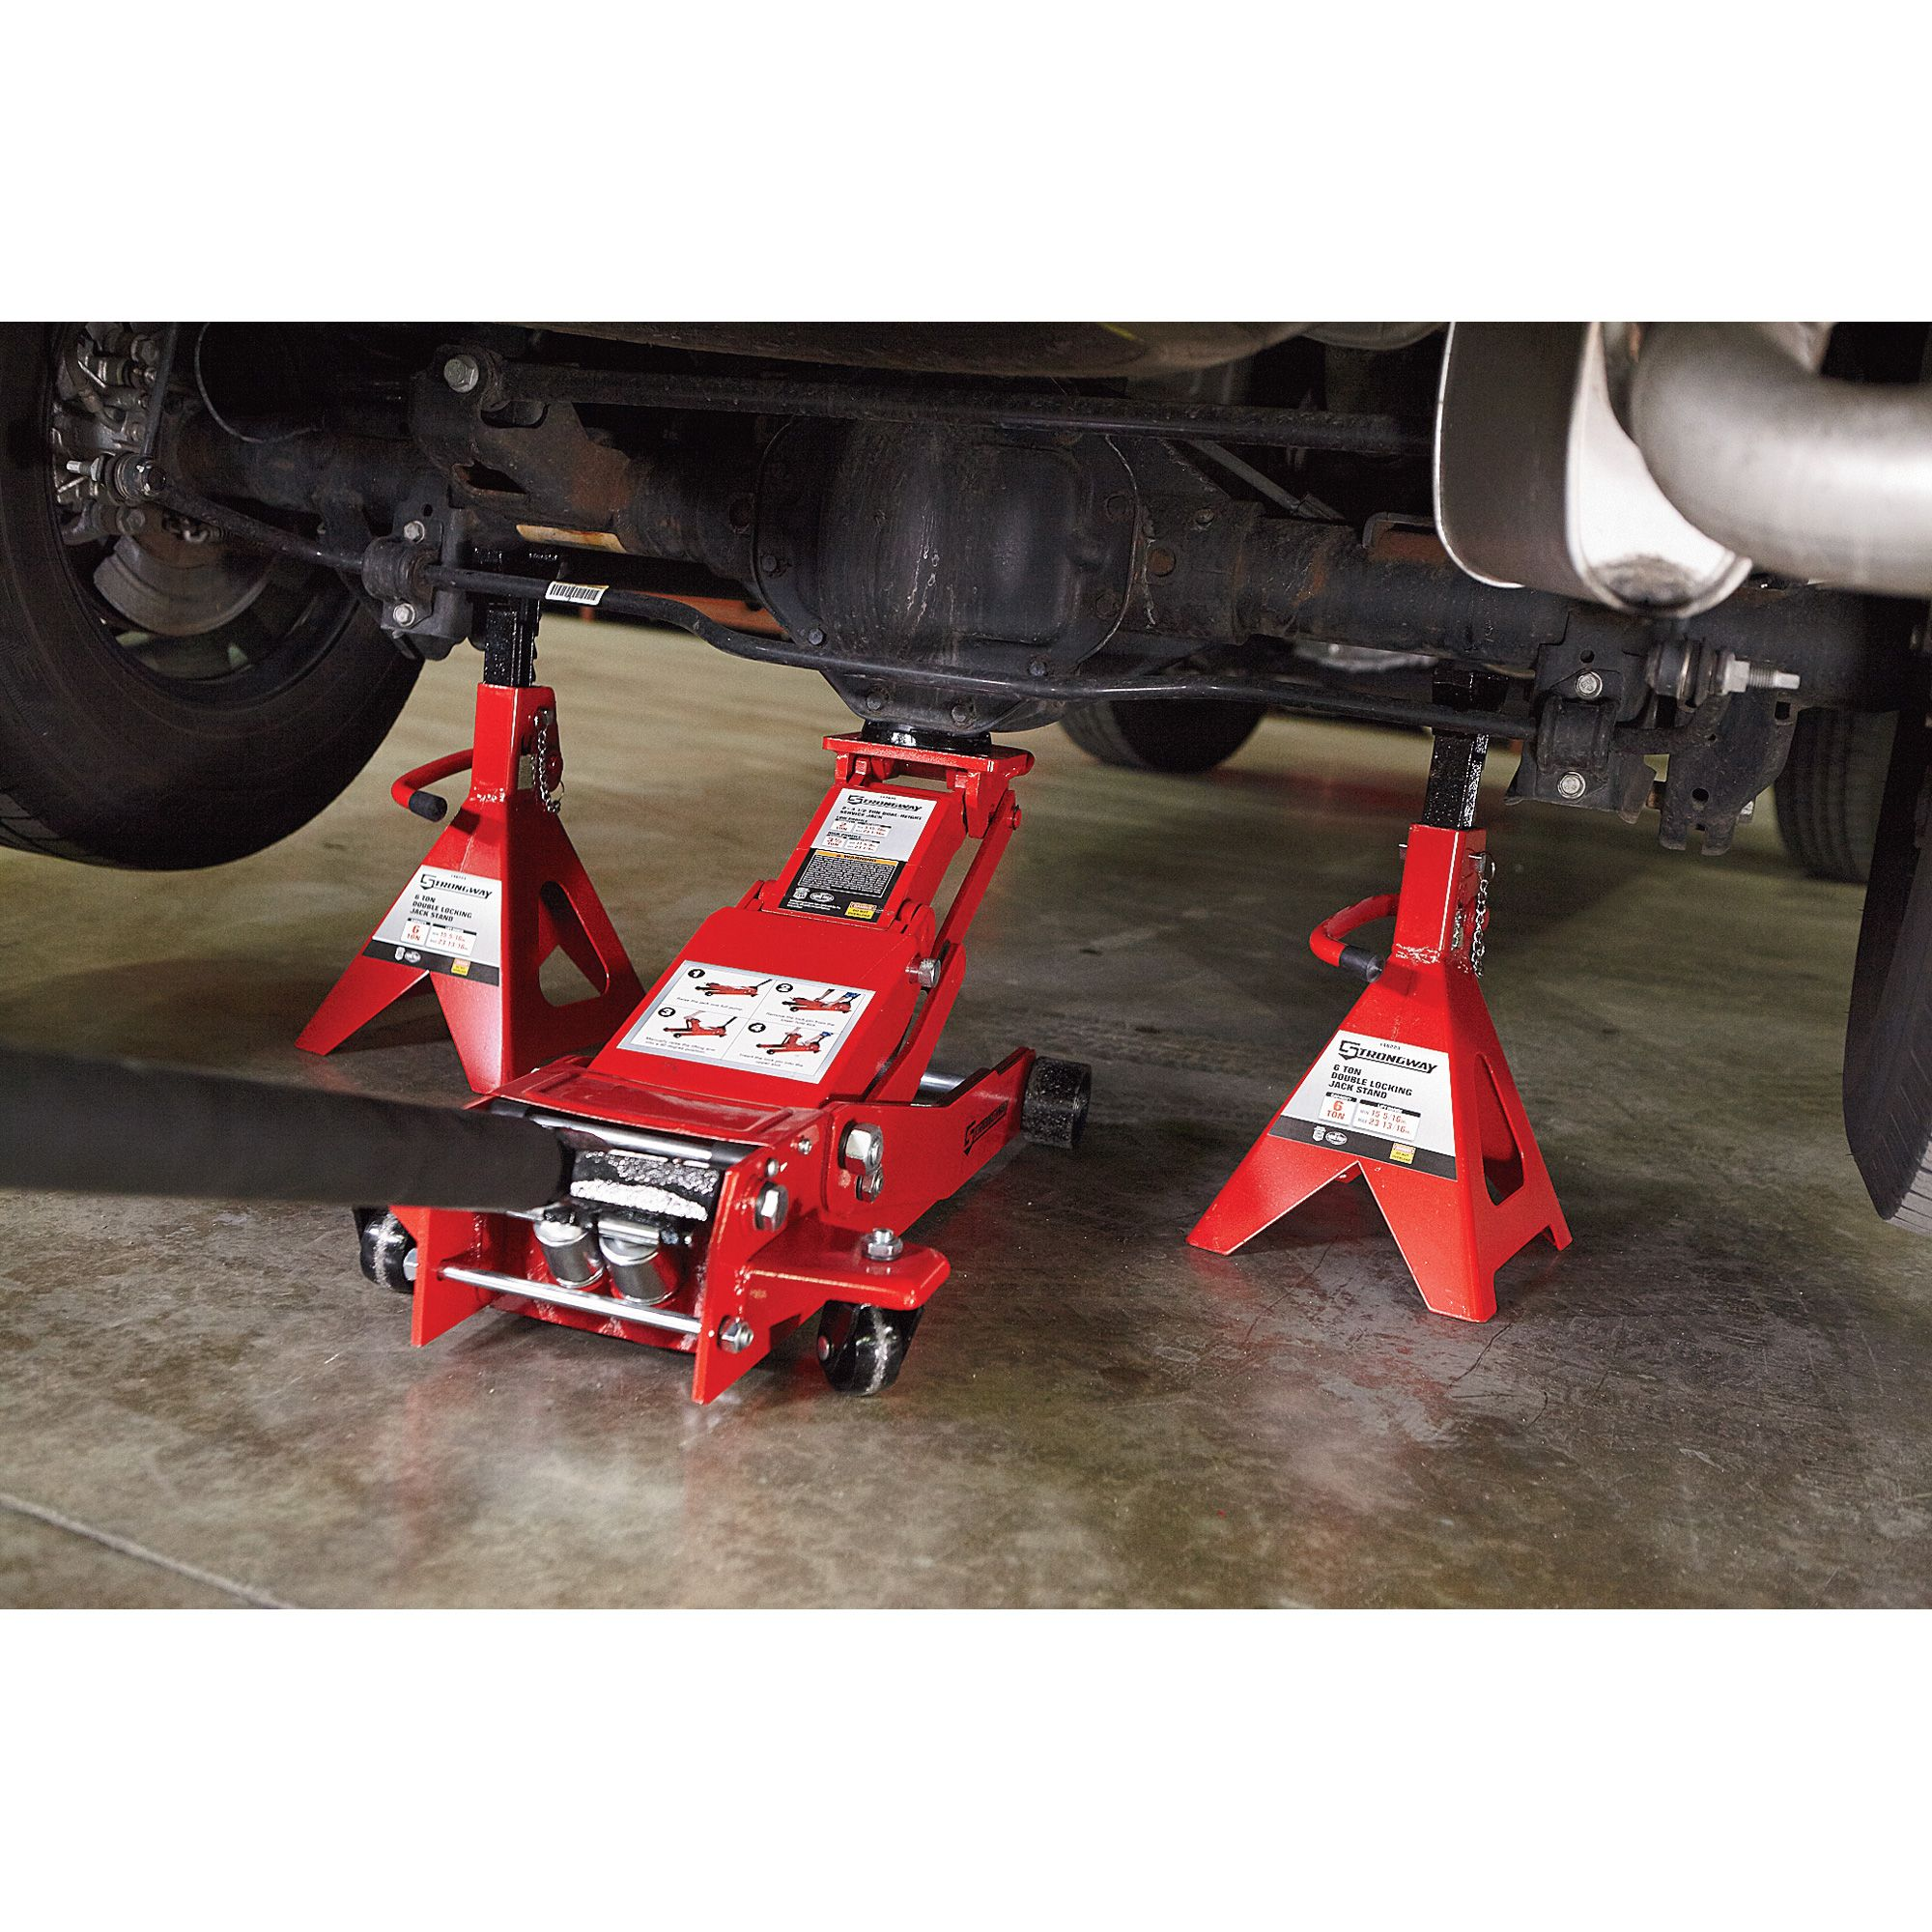 These 6 Ton Strongway Jack Stands Feature Double Locking Capability The Patented Safety Pin Design Adds Extra Security W Jack Stands Auto Service Garage Cafe